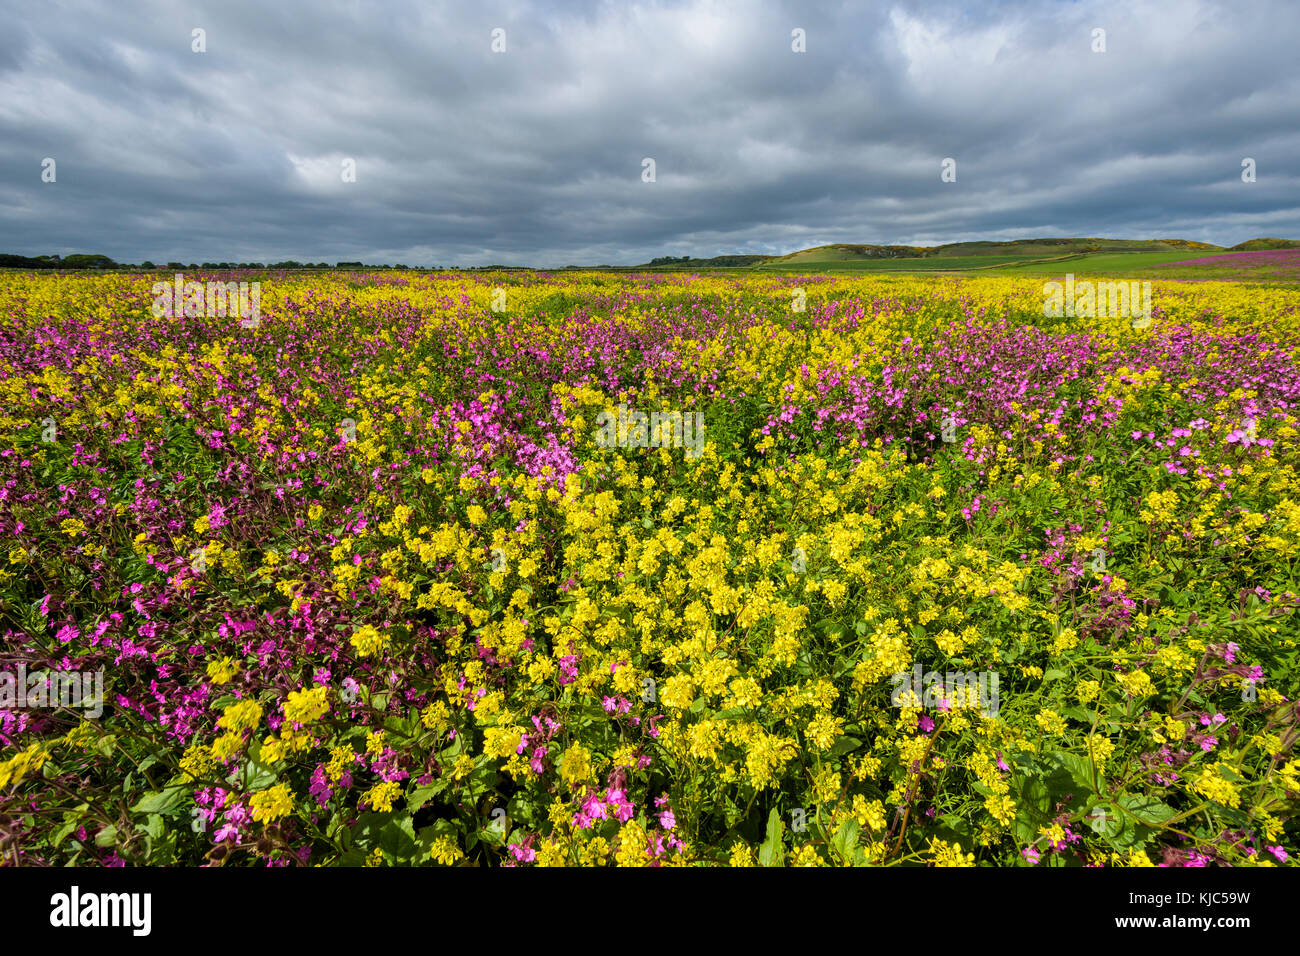 Blooming canola field with pink flowering plant on a cloudy day at Bamburgh in Northumberland, England, United Kingdom - Stock Image